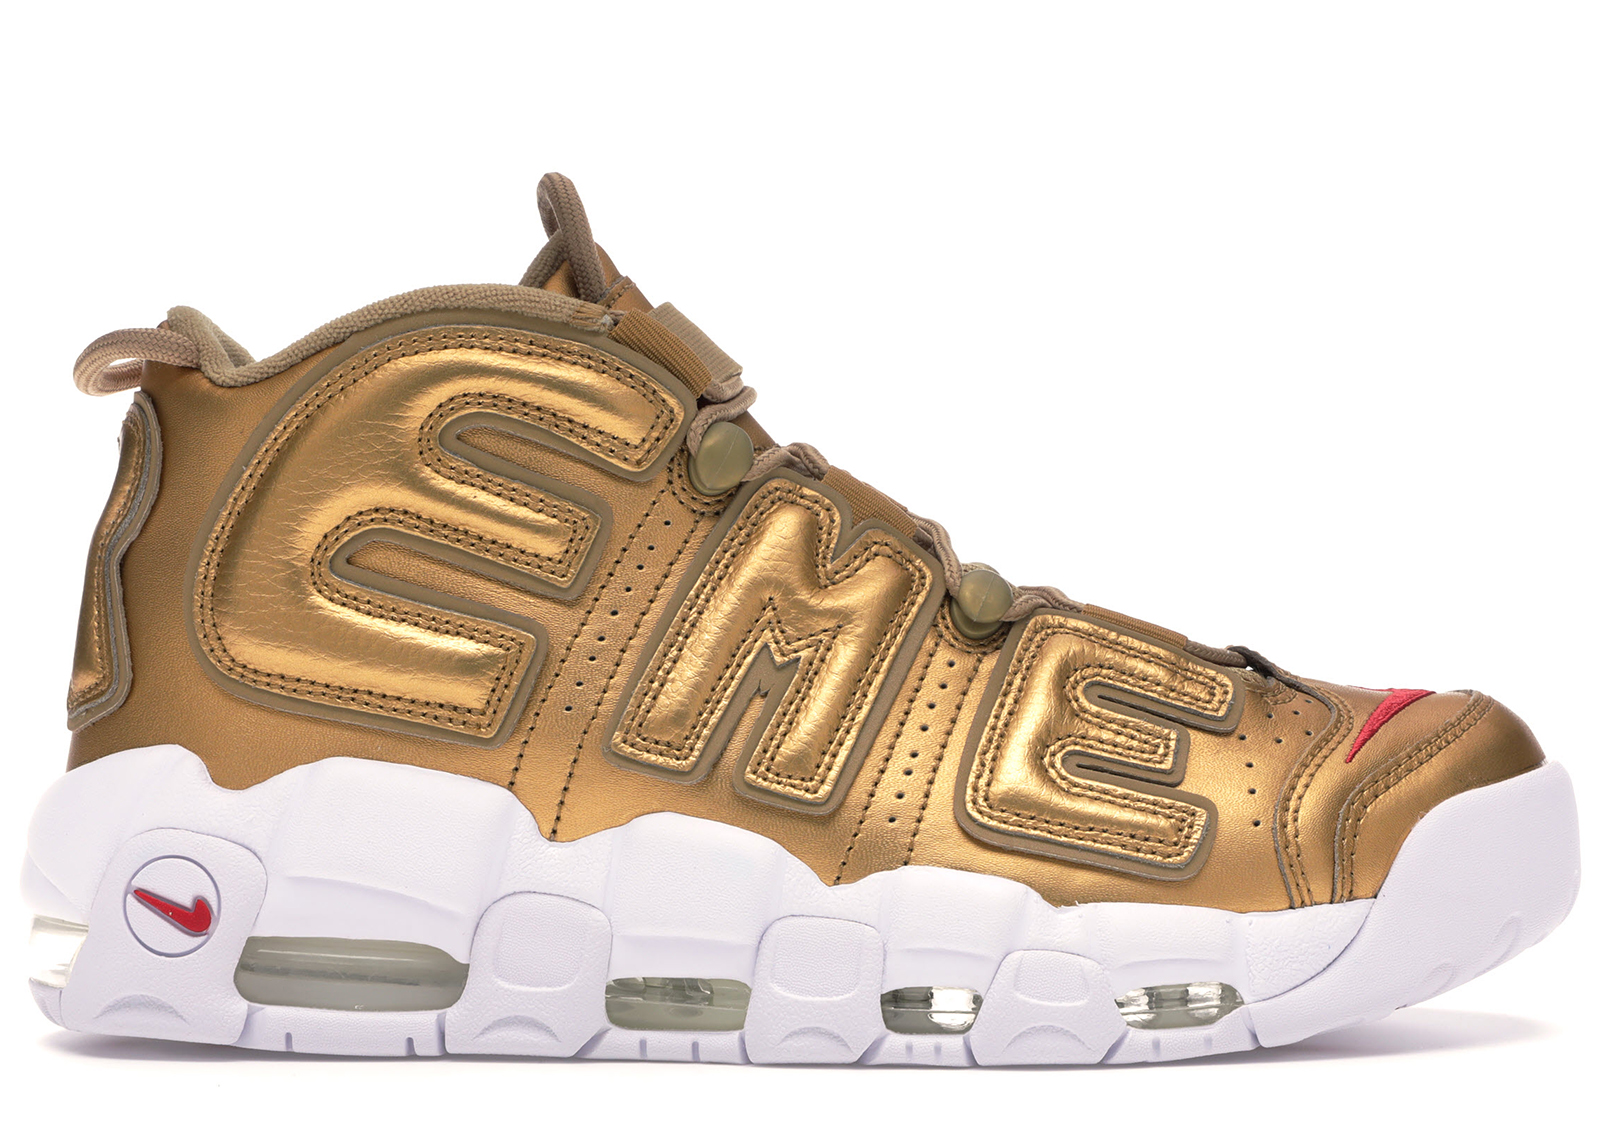 nike air max more uptempo Weiß